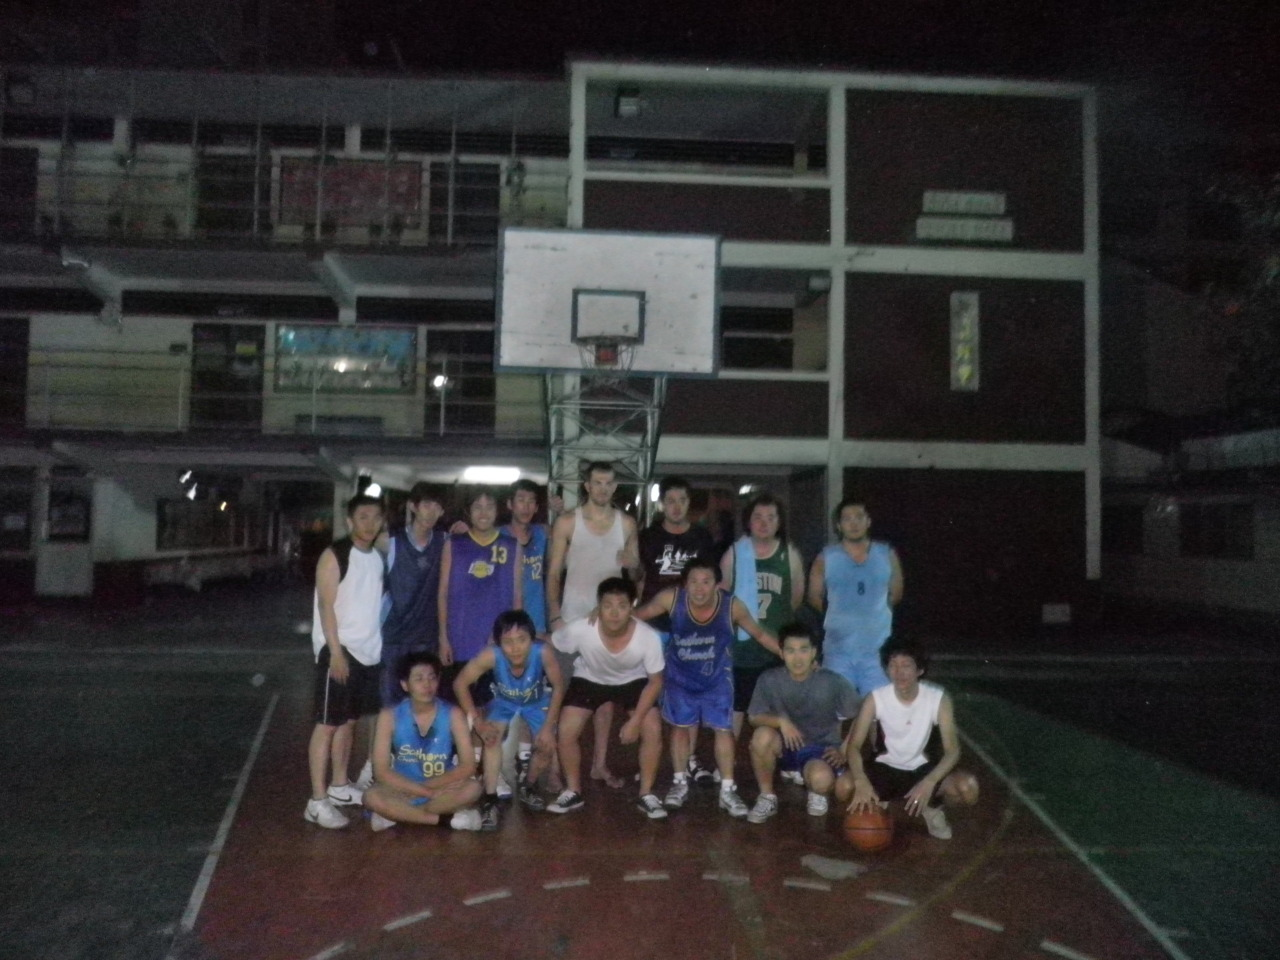 The team and I after practice.